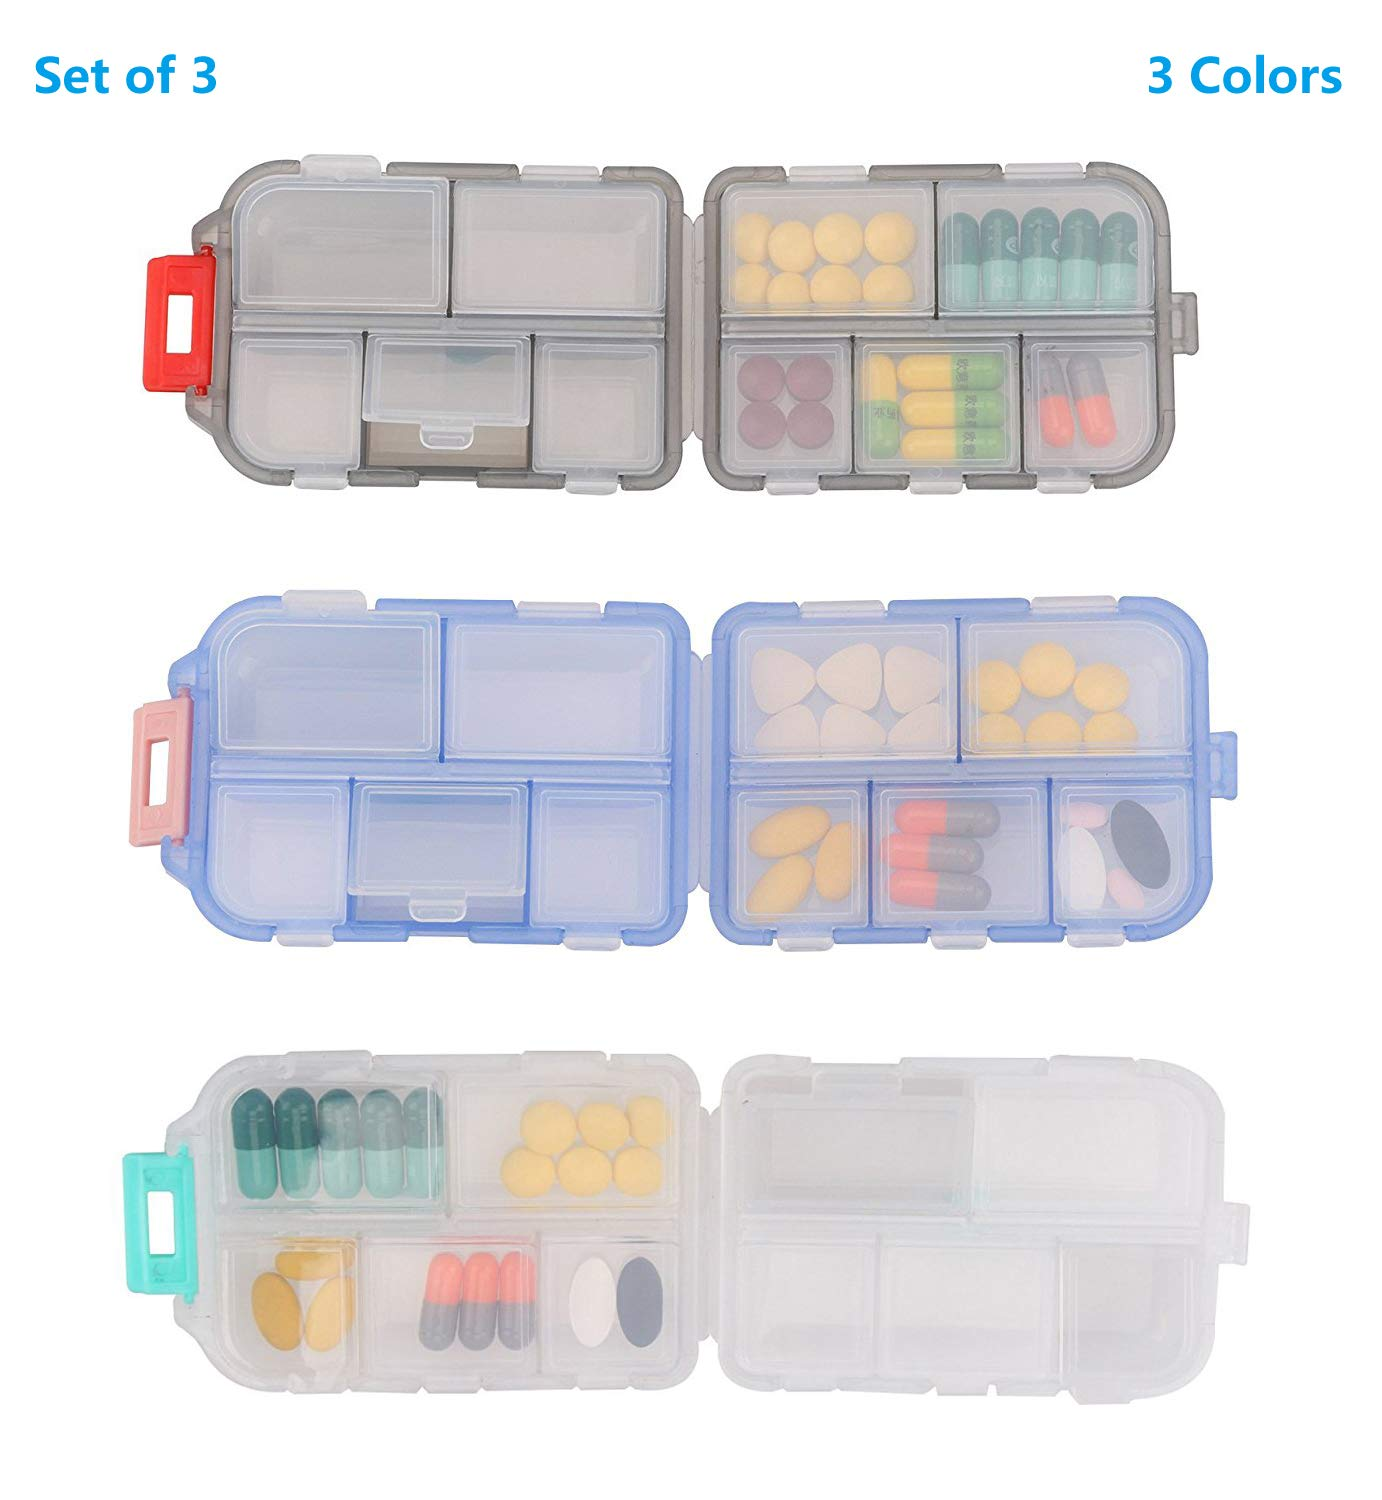 Yeeho Pill Case (3 Pack) - Portable Small Supplements Tablet Container Box with 10 Compartments - Medicine Capsule Vitamin Fold Flip Organizer Dispenser Holder Storage for Travel Trip Pocket Purse by YEEHO (Image #2)